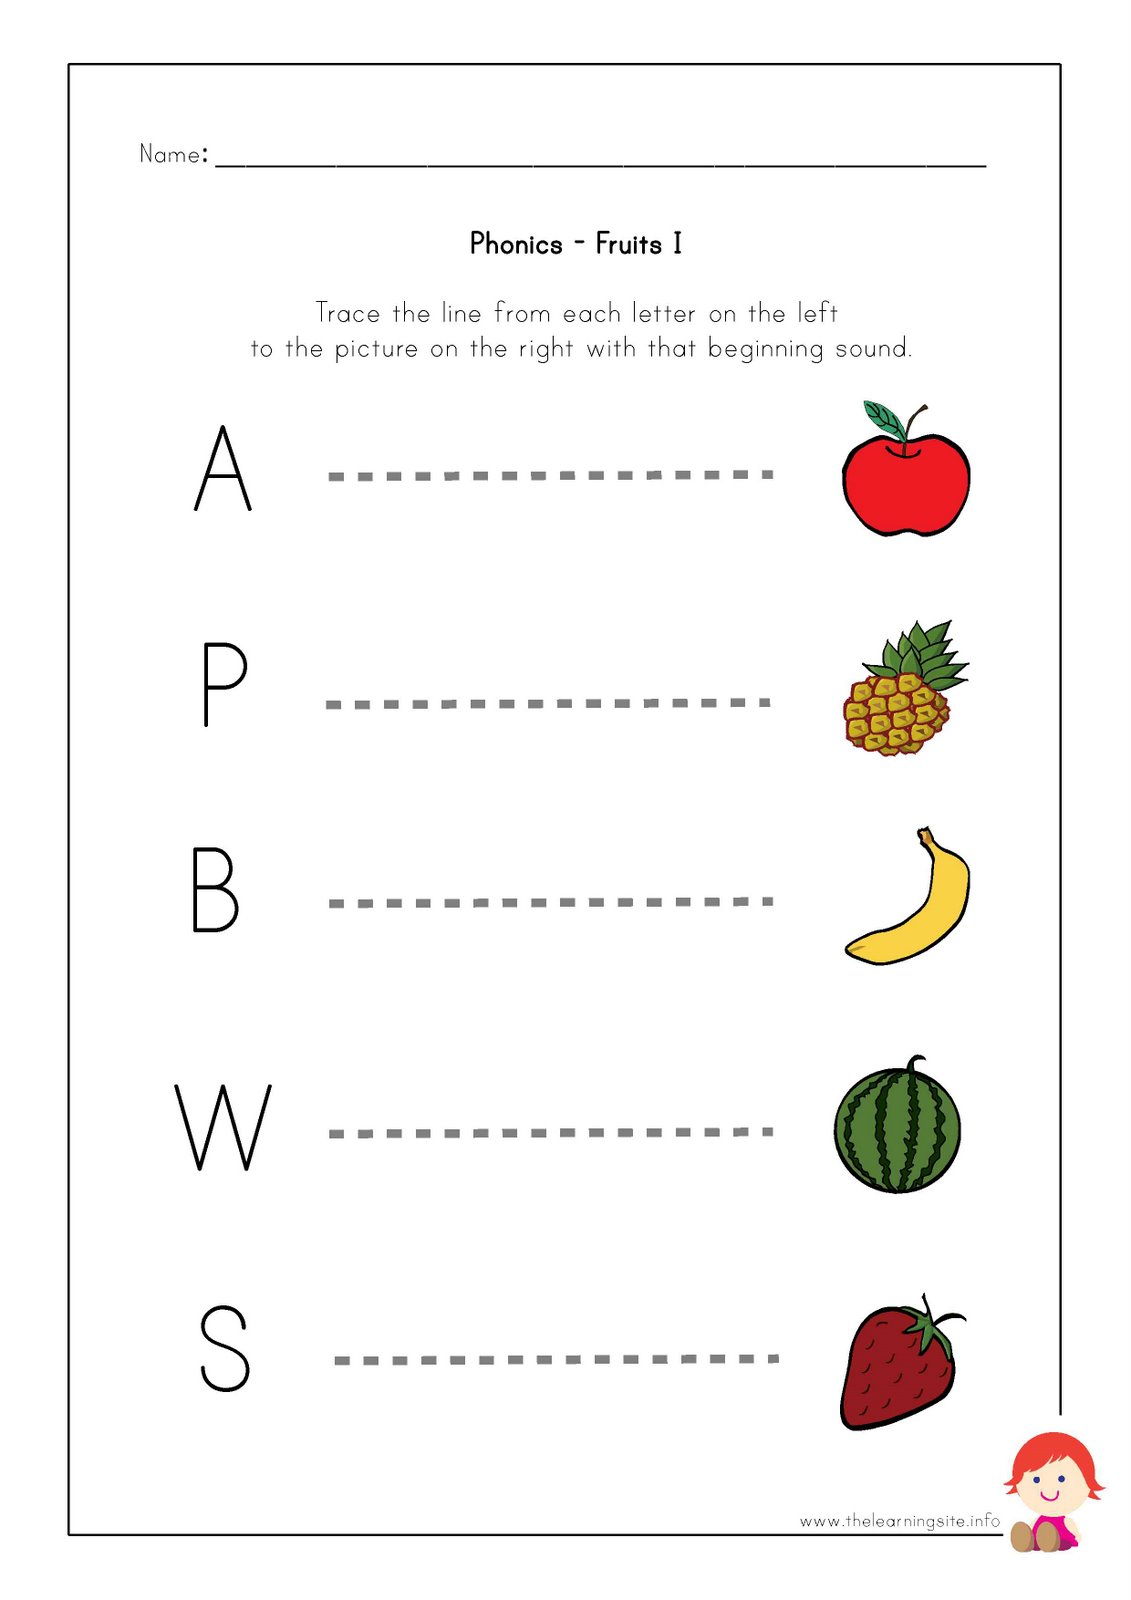 Phonic worksheets pdf